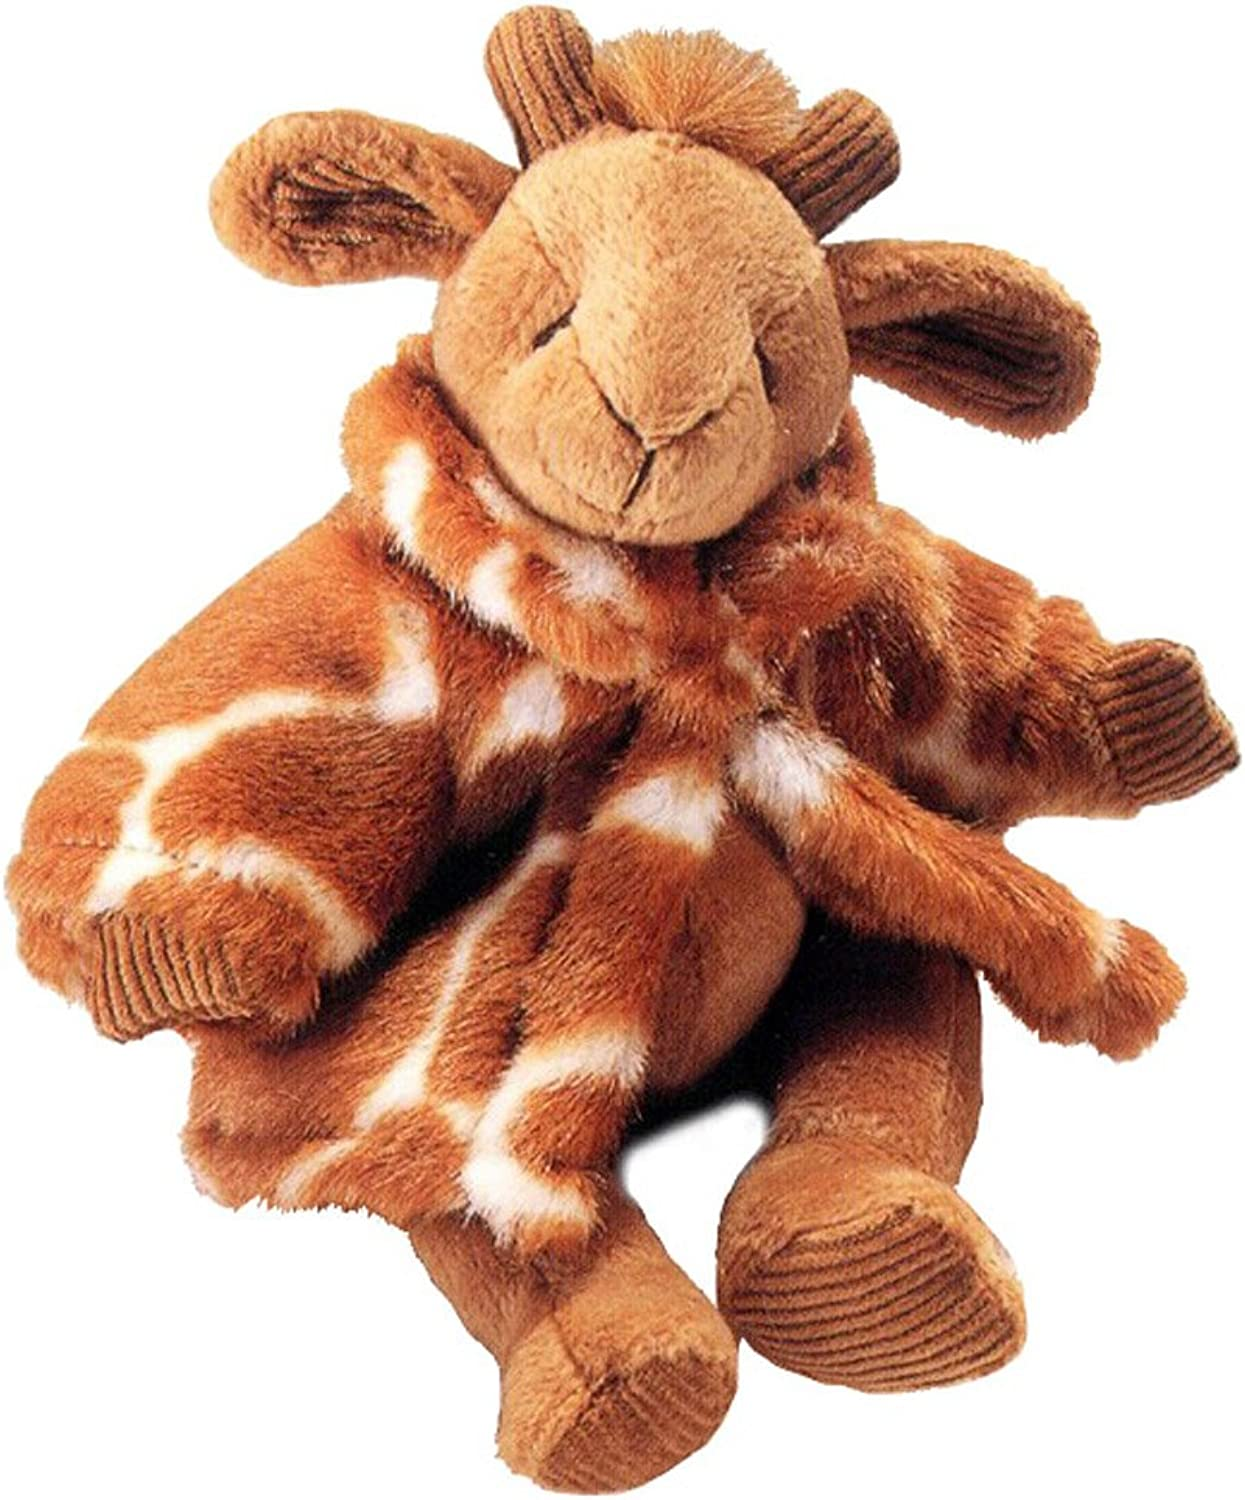 Russ Plush Gisella GIRAFFE Approx. 15.5 tall w Faux Fur Coat - HeartCraft Collection by Russ Berrie and Co.